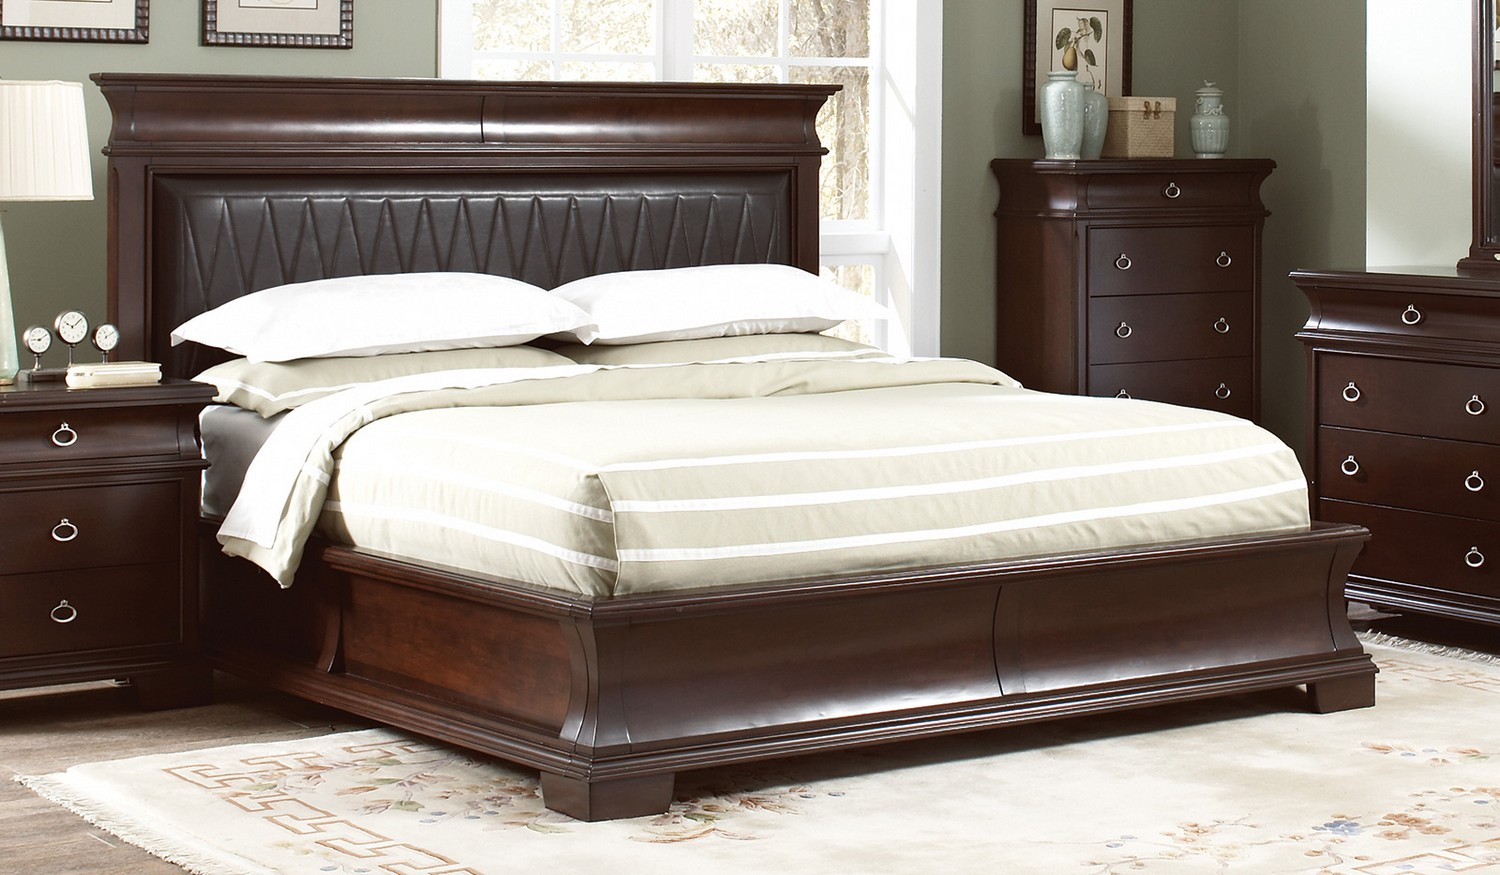 Coaster Kurtis Bed - Walnut